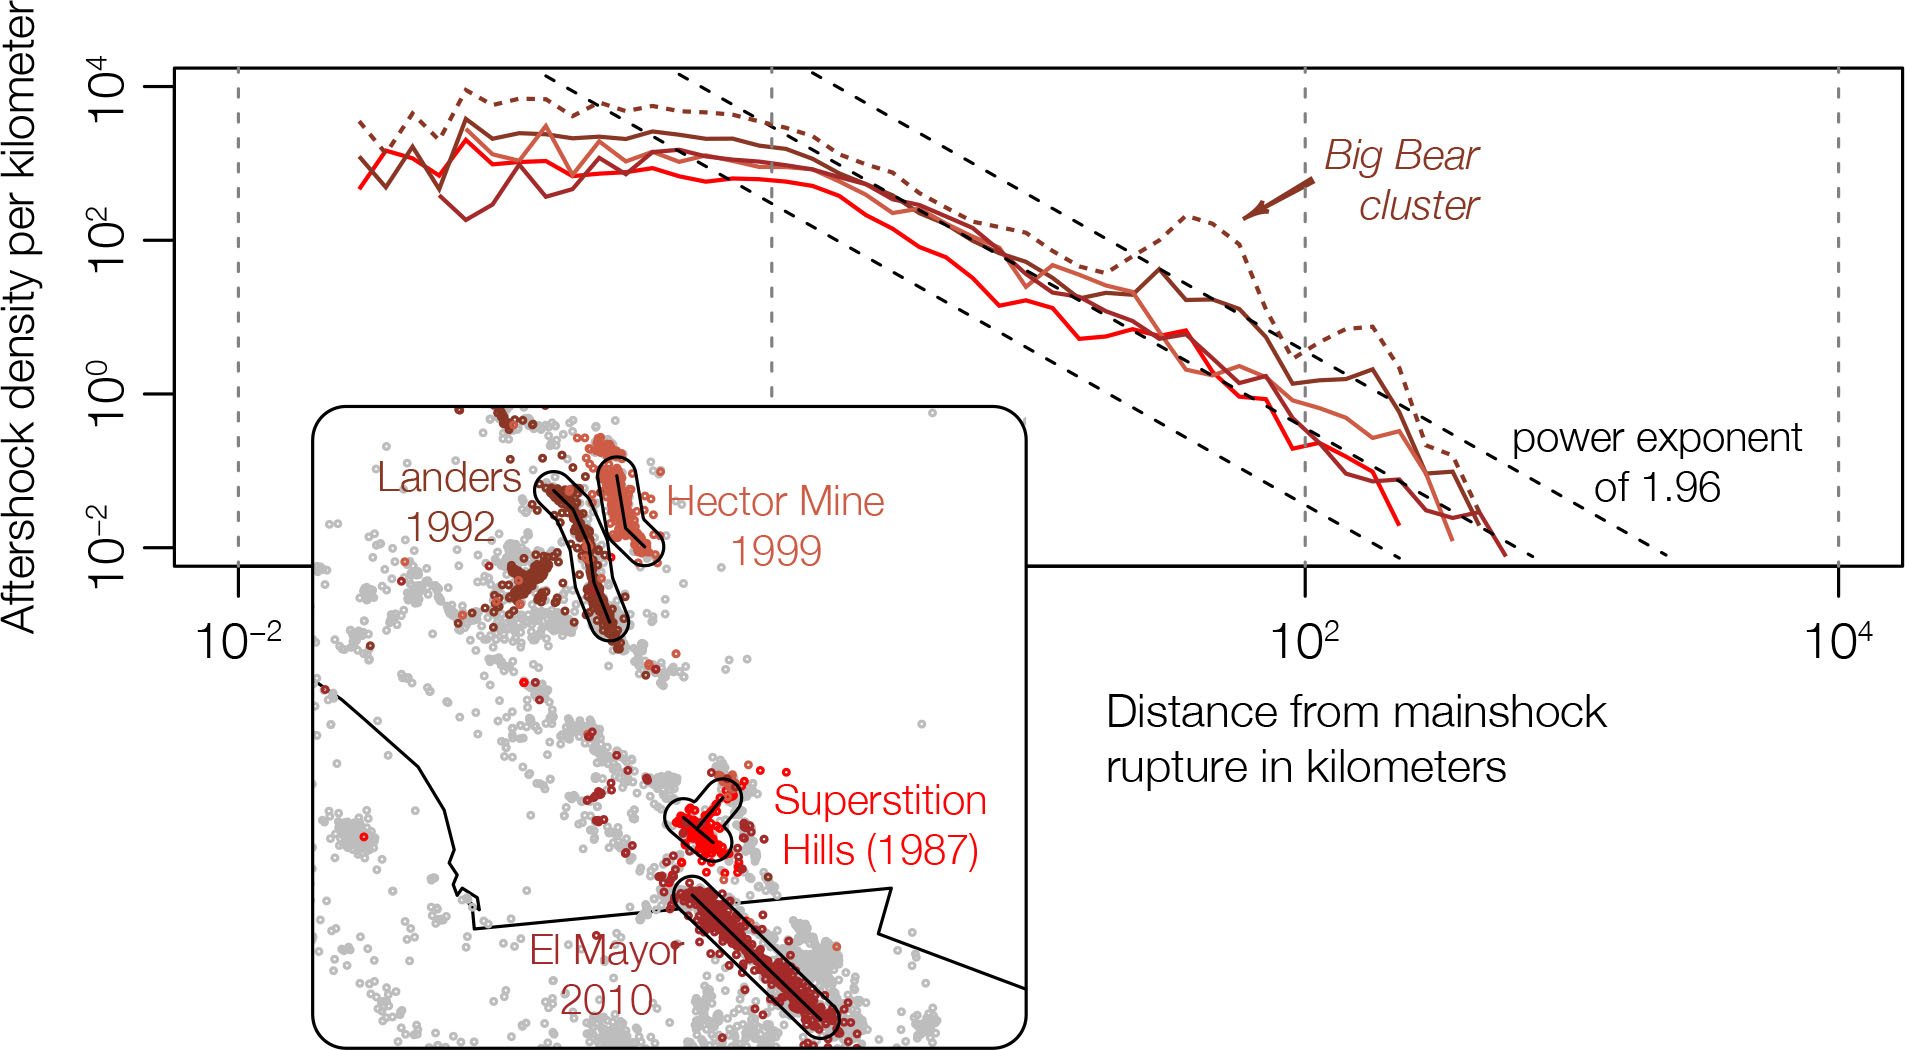 The power-law spatial decay of aftershock density, modified from Mignan (2018) - Spatial linear density distribution of aftershocks for the four largest strike-slip mainshocks in southern California. Only the first generation of aftershocks is considered. Including secondary aftershocks (such as the events triggered by the Big Bear aftershock) adds some spatial heterogeneity on top of the main power-law decay (see dotted curve). The curves roughly follow, at first order, the dashed lines, indicative of a power-law behavior on a log-log plot. Here the power-law behavior starts at a distance greater than one kilometer away from the mainshock trace. Black contours are 10 km from the mainshock rupture on the map for scale.